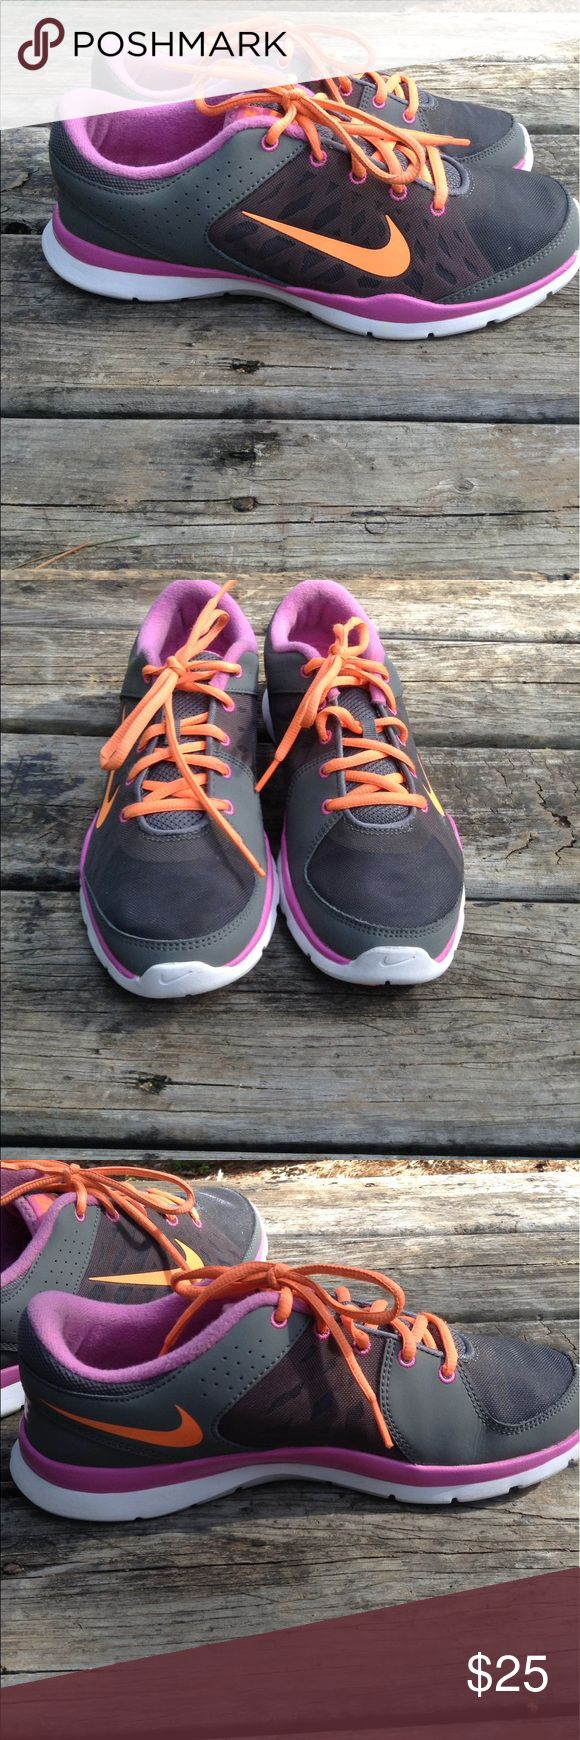 💖Women's Nike Flex Trainer 3💖 Shoe are in good preowned condition with minor stuffs.Has one small hole on side of one shoe see:pictures. Breathable mesh and foam upper,padded collar/tongue,lightweight.Size:9.5 Color:Grey,Orange,Pink .Overall good lightweight shoes Nike Shoes Athletic Shoes